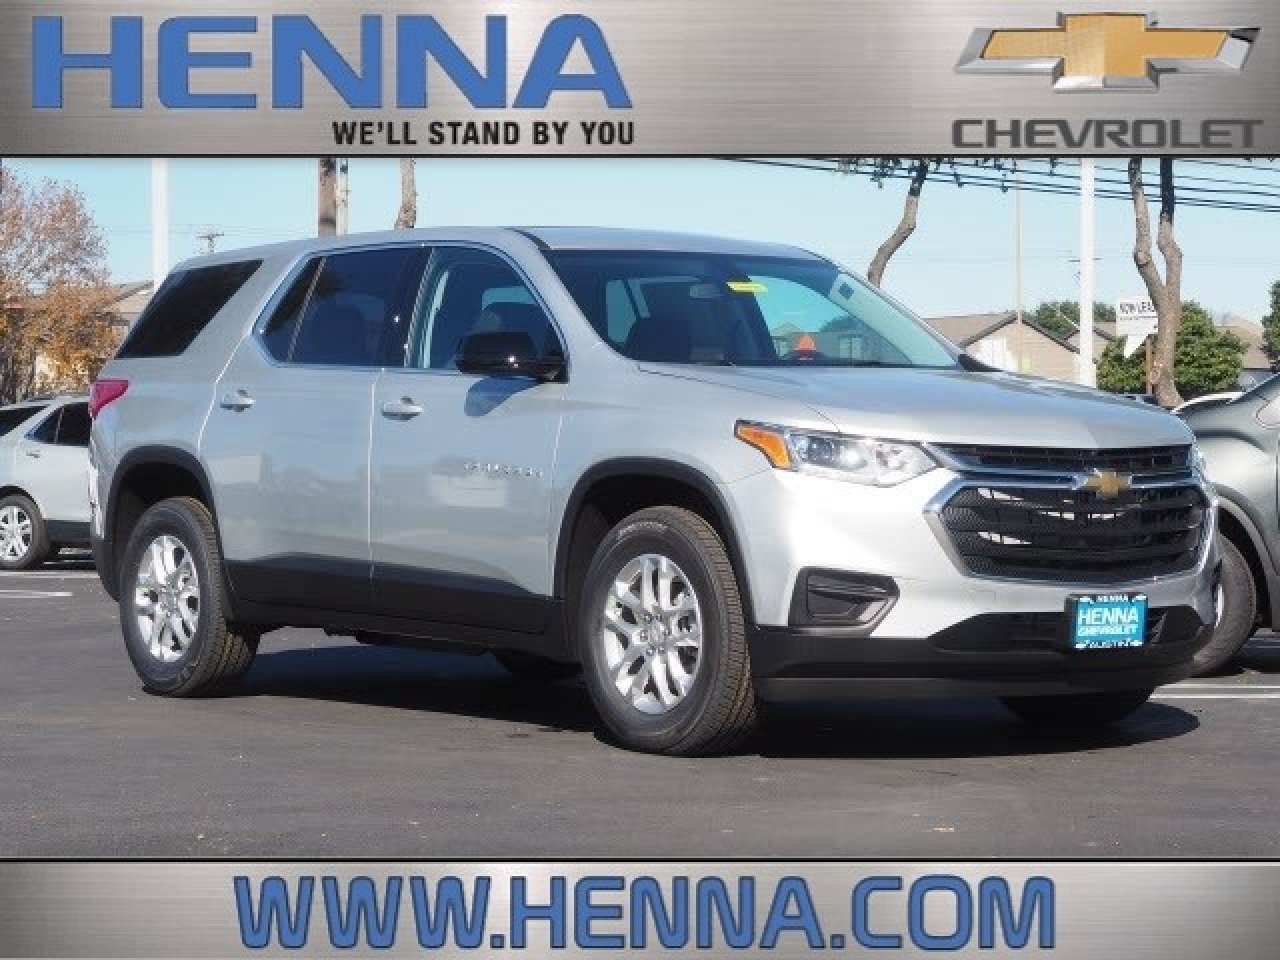 2020 Chevrolet Traverse Ls 1Gnerfkw8Lj185100 | Henna 2021 Chevy Traverse Ls Configurations, Color Options, Towing Capacity